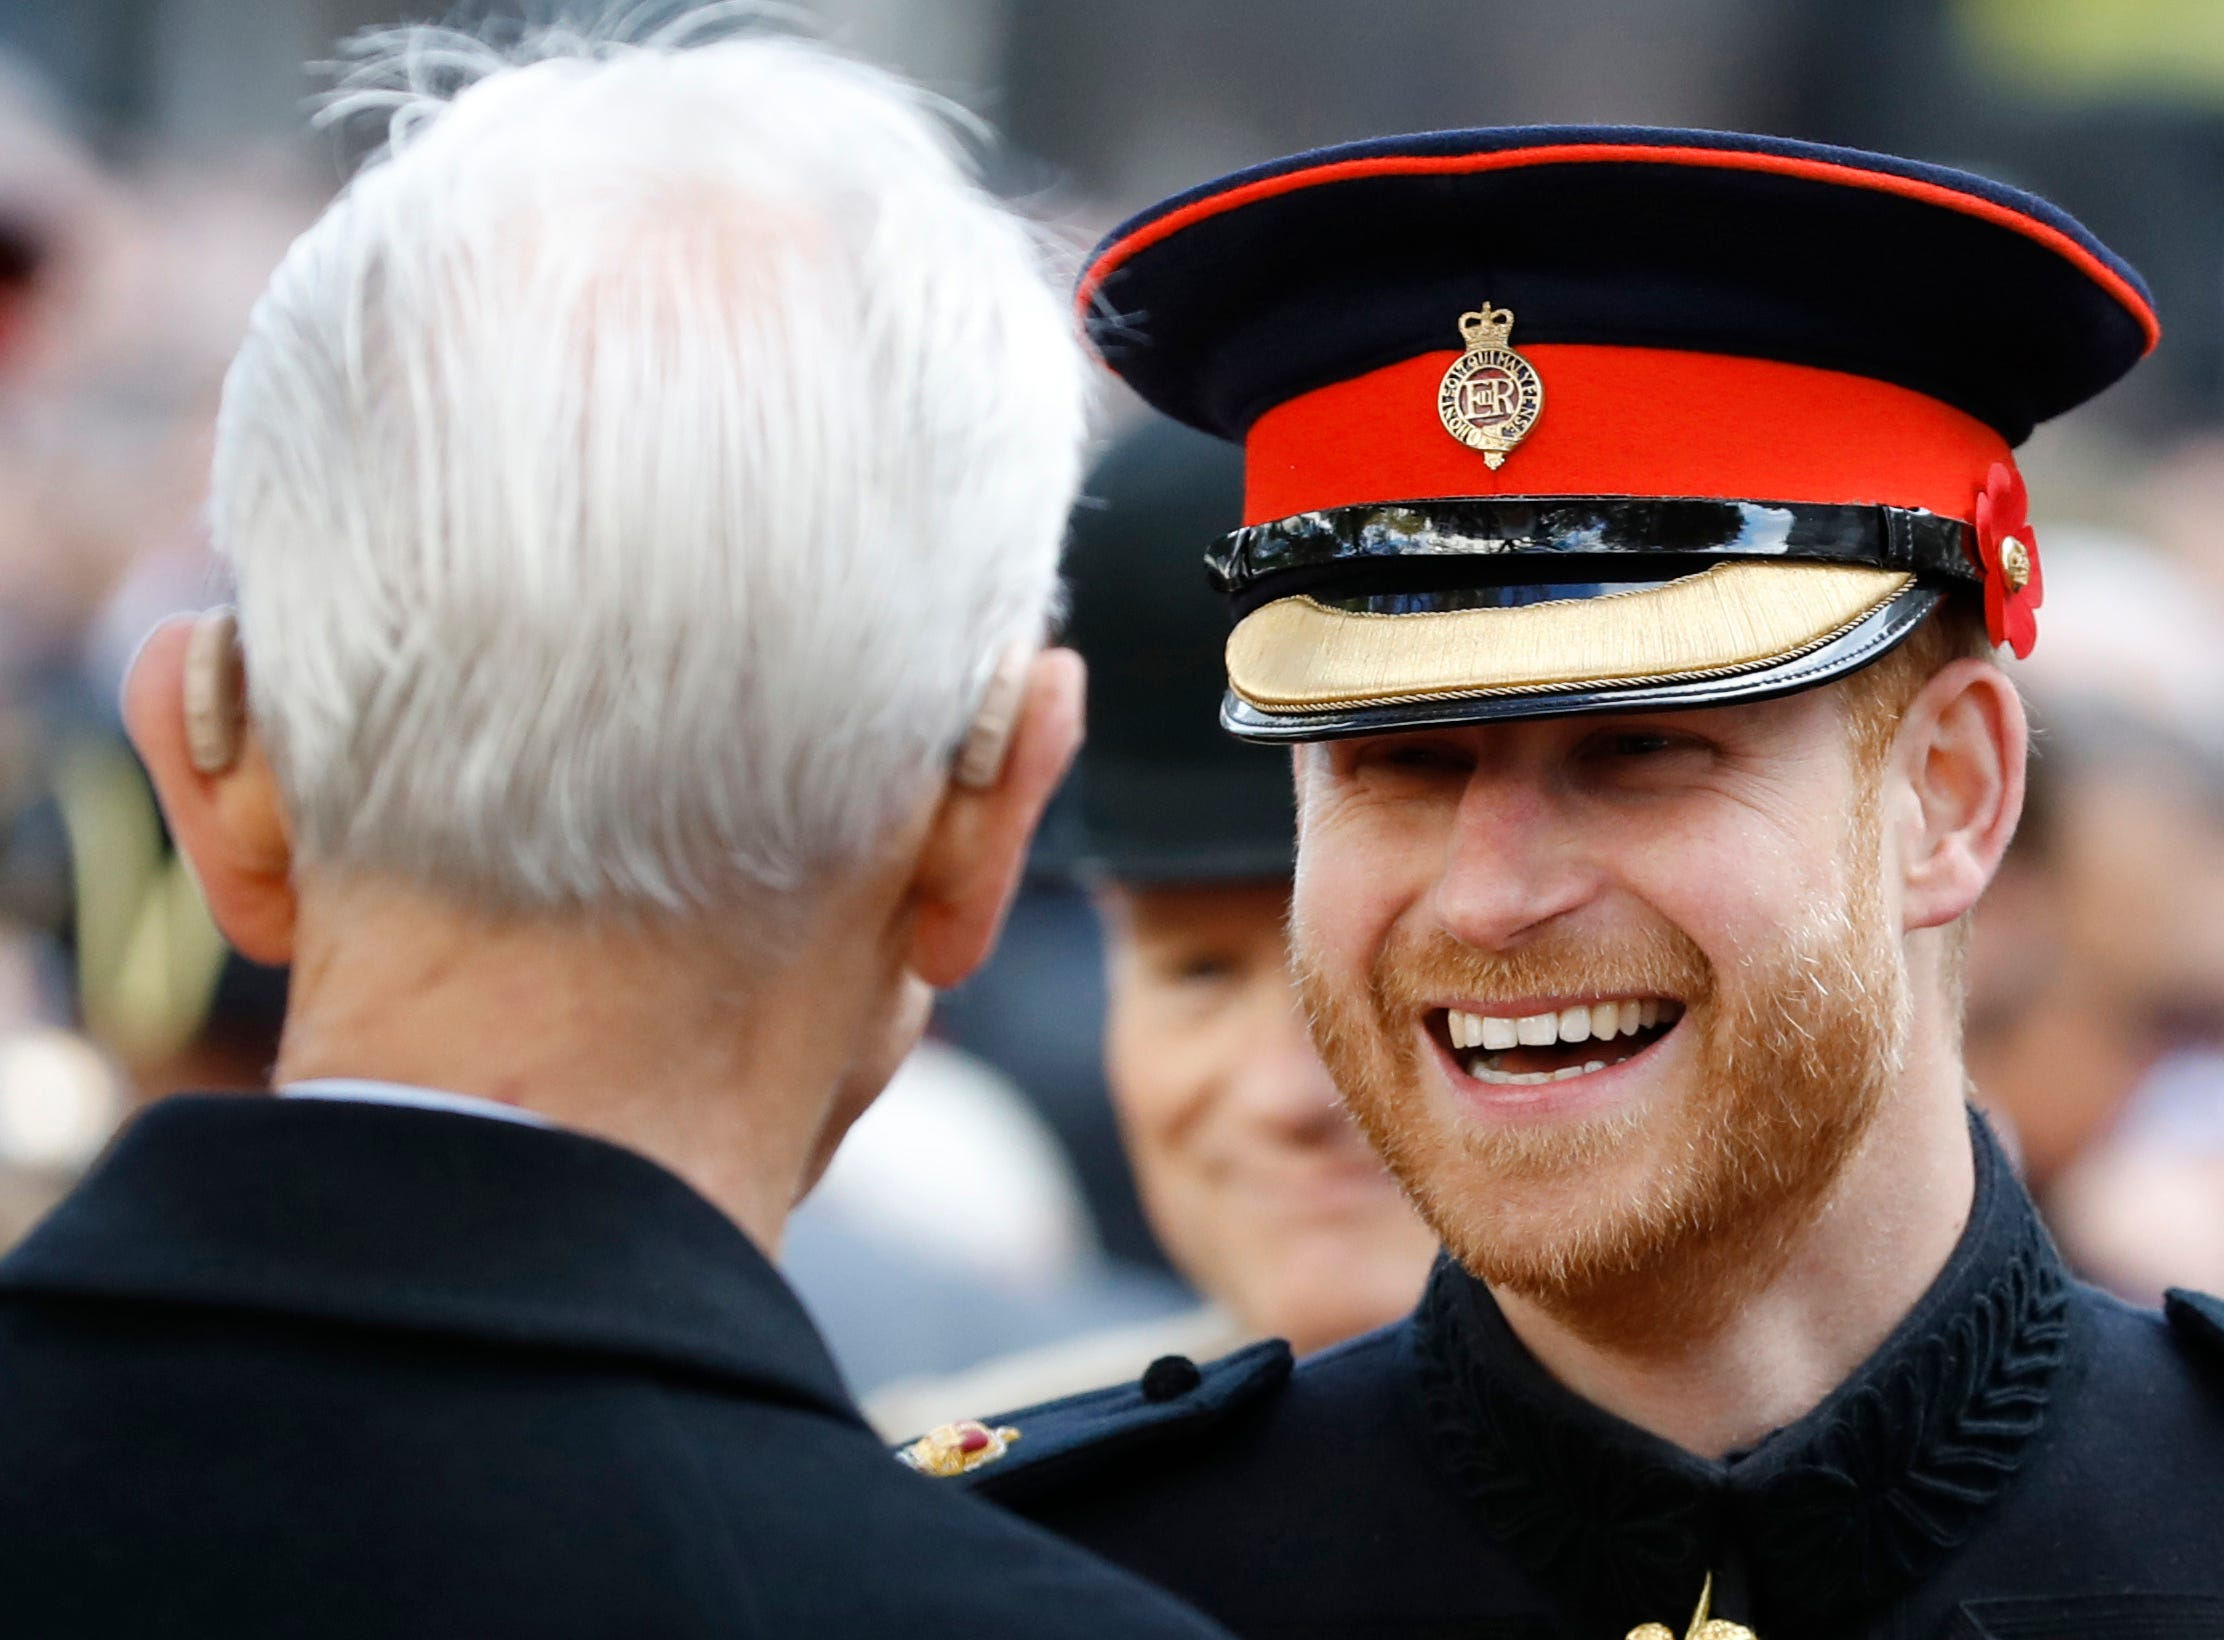 Britain's Prince Harry smiles as he talks to servicemen and veterans as he attends the annual Field of Remembrance service at Westminster Abbey in London, Thursday, Nov. 8, 2018. The centenary of the end of hostilities in WWI will be marked with large commemoration services in London, Paris and on the battlefields of northern France, on Sunday Nov. 11. (AP Photo/Alastair Grant) ORG XMIT: XAG114